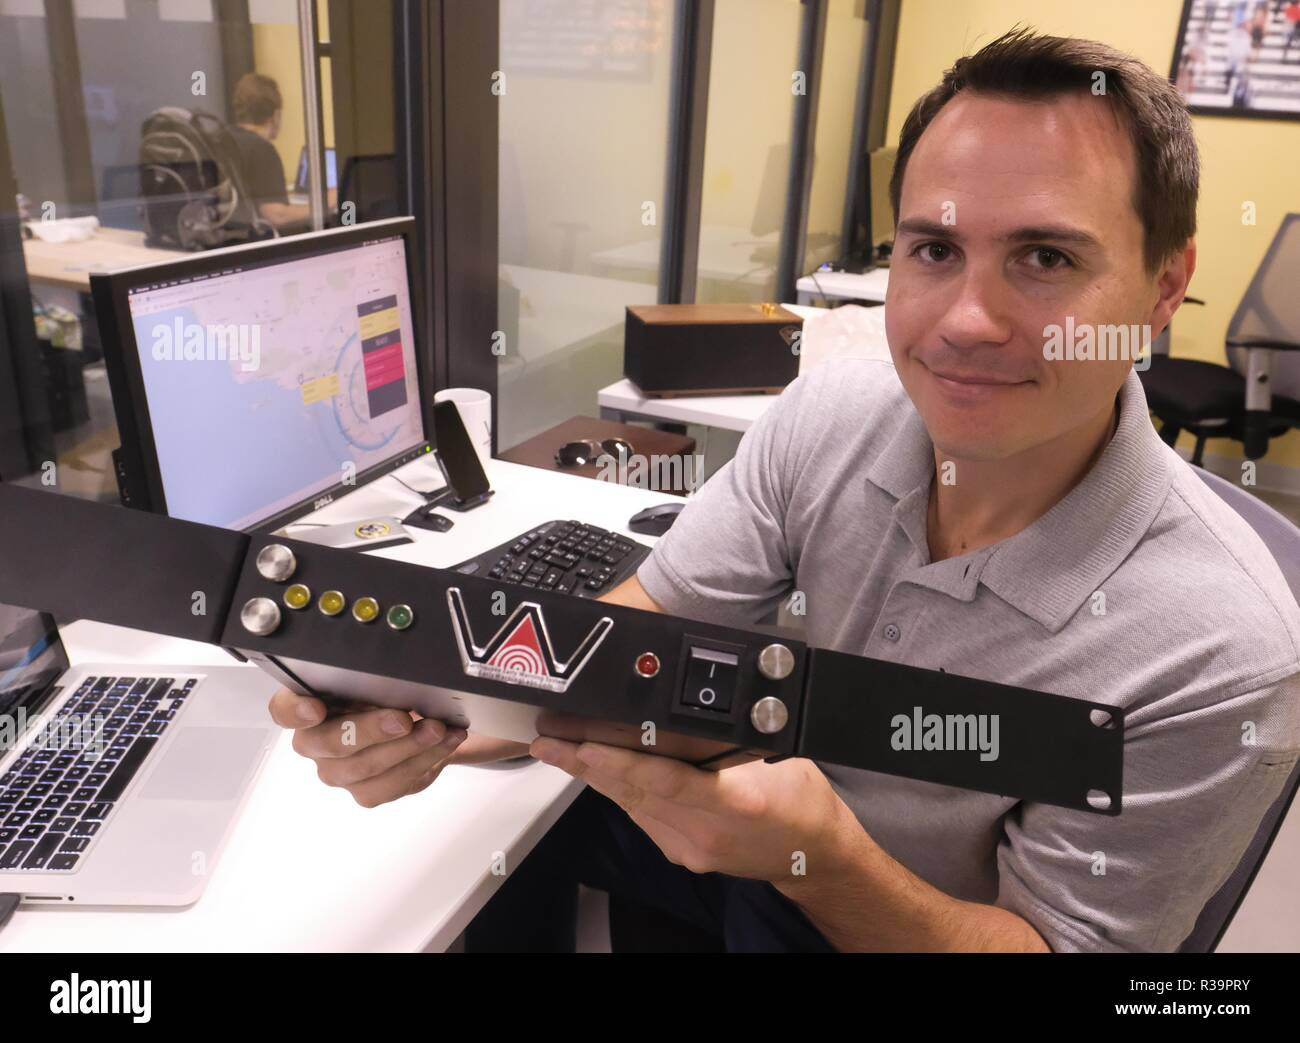 Los Angeles, California, USA. 31st Oct, 2018. Josh Bashioum, CEO of Early Warning Labs. Santa Monica-based Early Warning Labs has developed an earthquake early warning system and deployed it in 3 LAUSD schools, with aims to add it to all 1,200 in the district. Credit: Ringo Chiu/ZUMA Wire/Alamy Live News - Stock Image